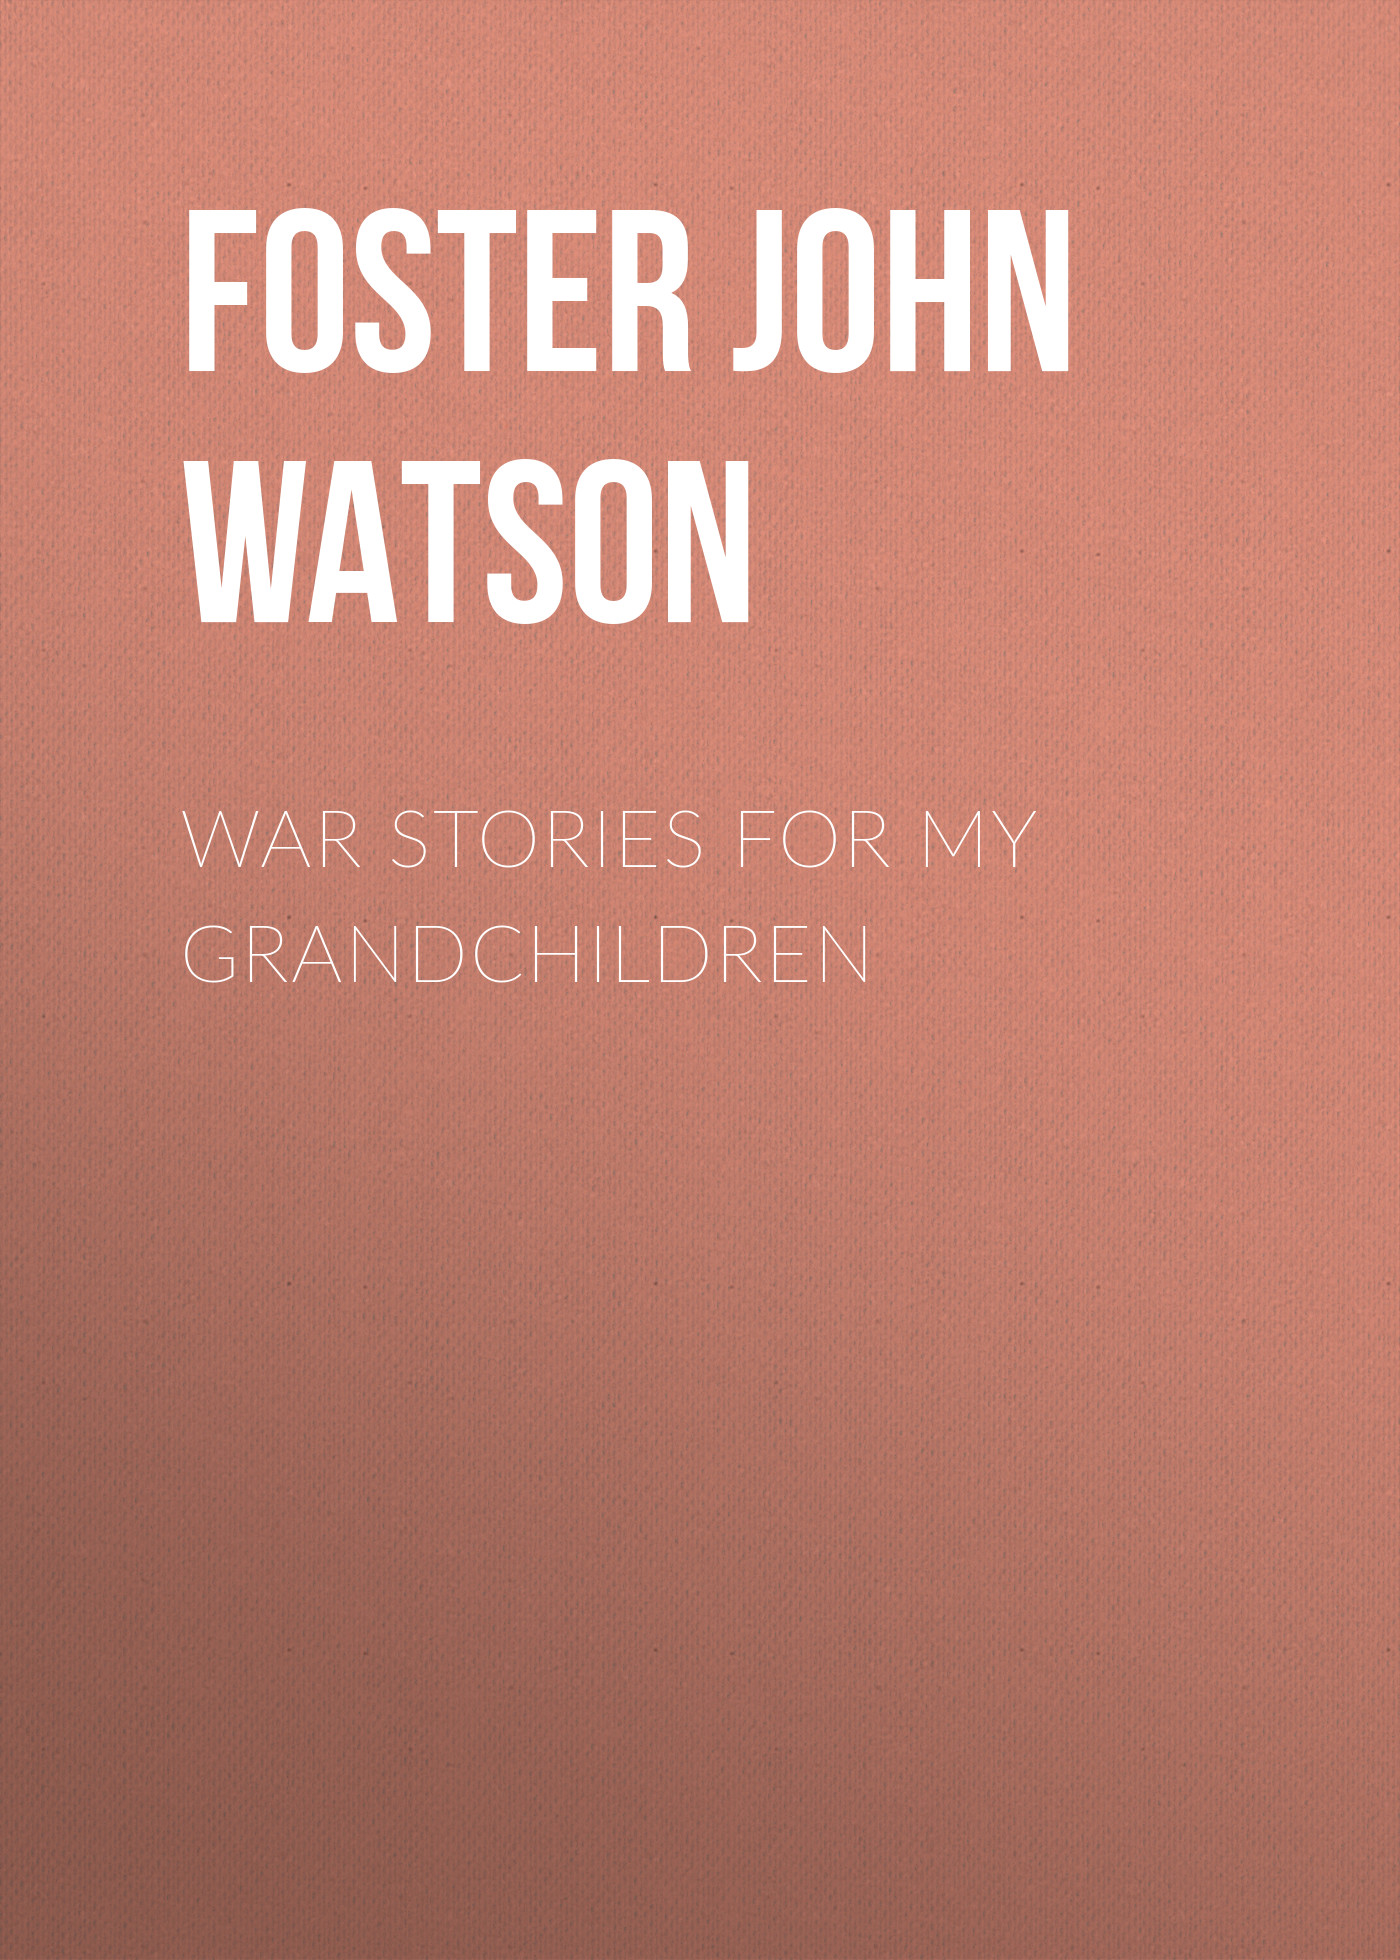 Foster John Watson War Stories for my Grandchildren недорго, оригинальная цена